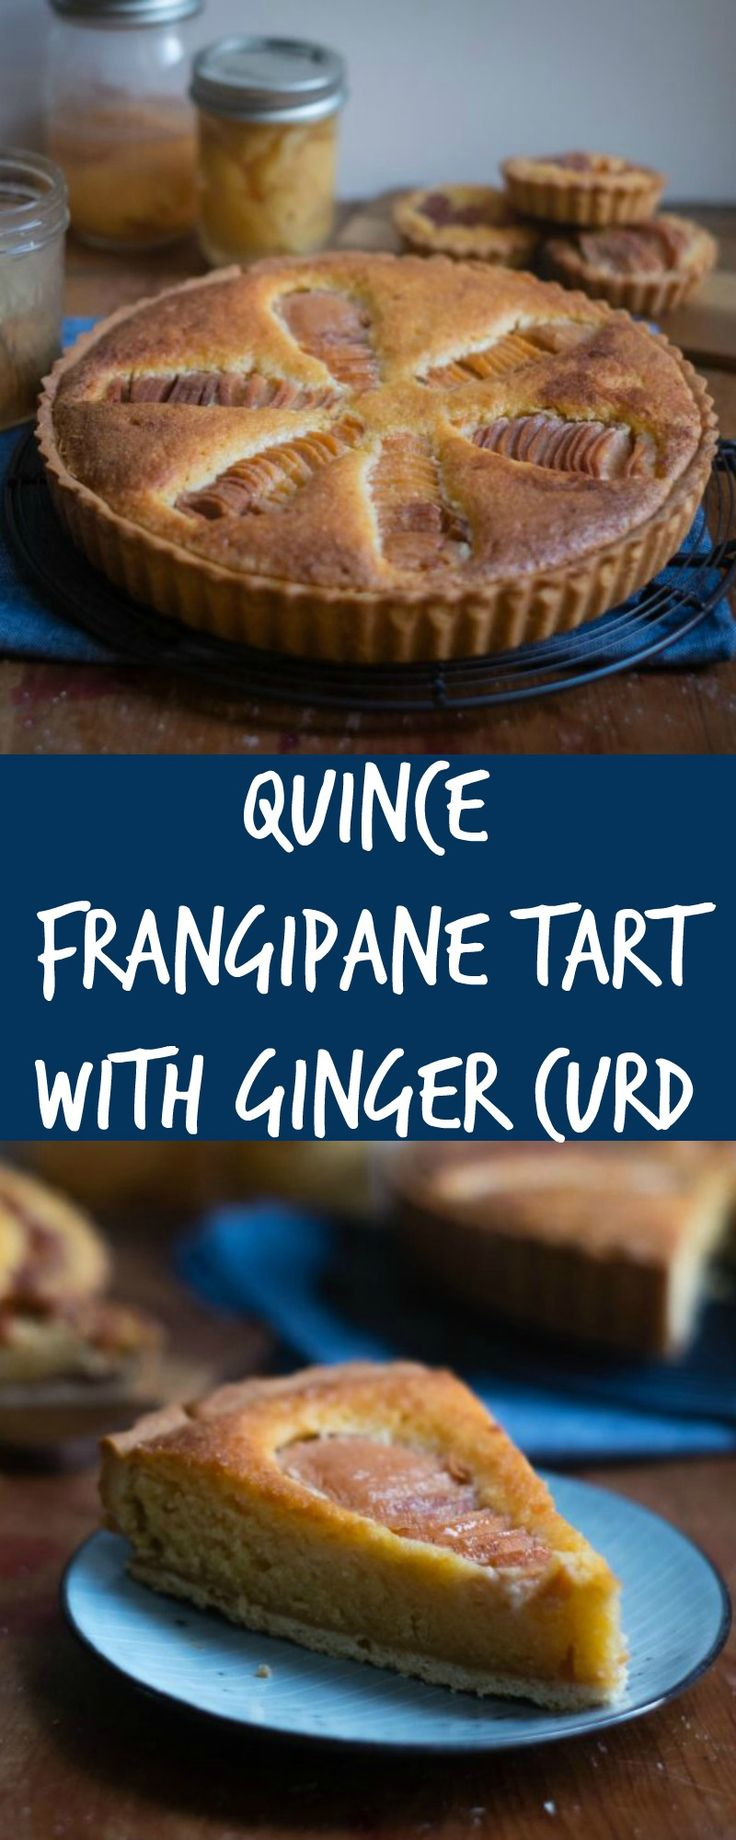 Quince Frangipane Tart with Ginger Curd - Patisserie Makes Perfect